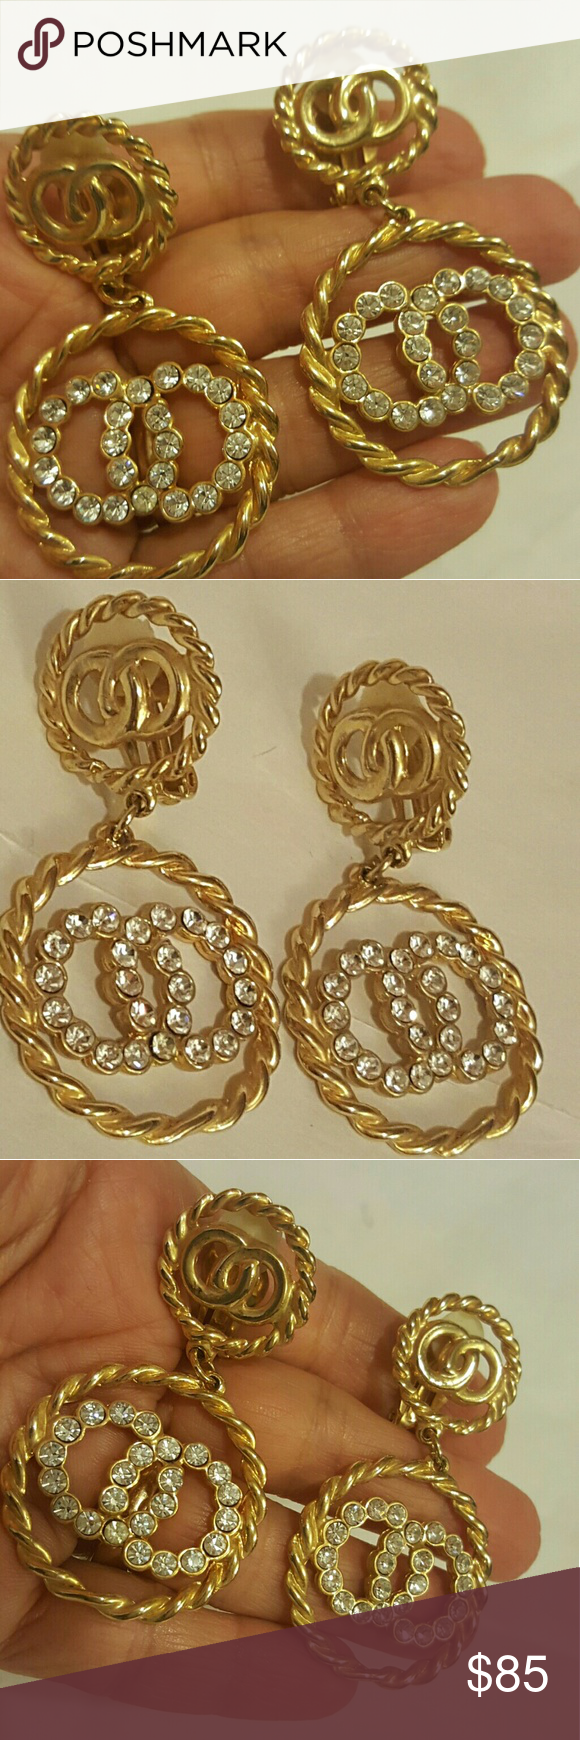 Large chandelier earrings favorite chandelier clip on earrings wear large chandelier earrings favorite chandelier clip on earrings wear it with your favorite chanel bag cc arubaitofo Gallery